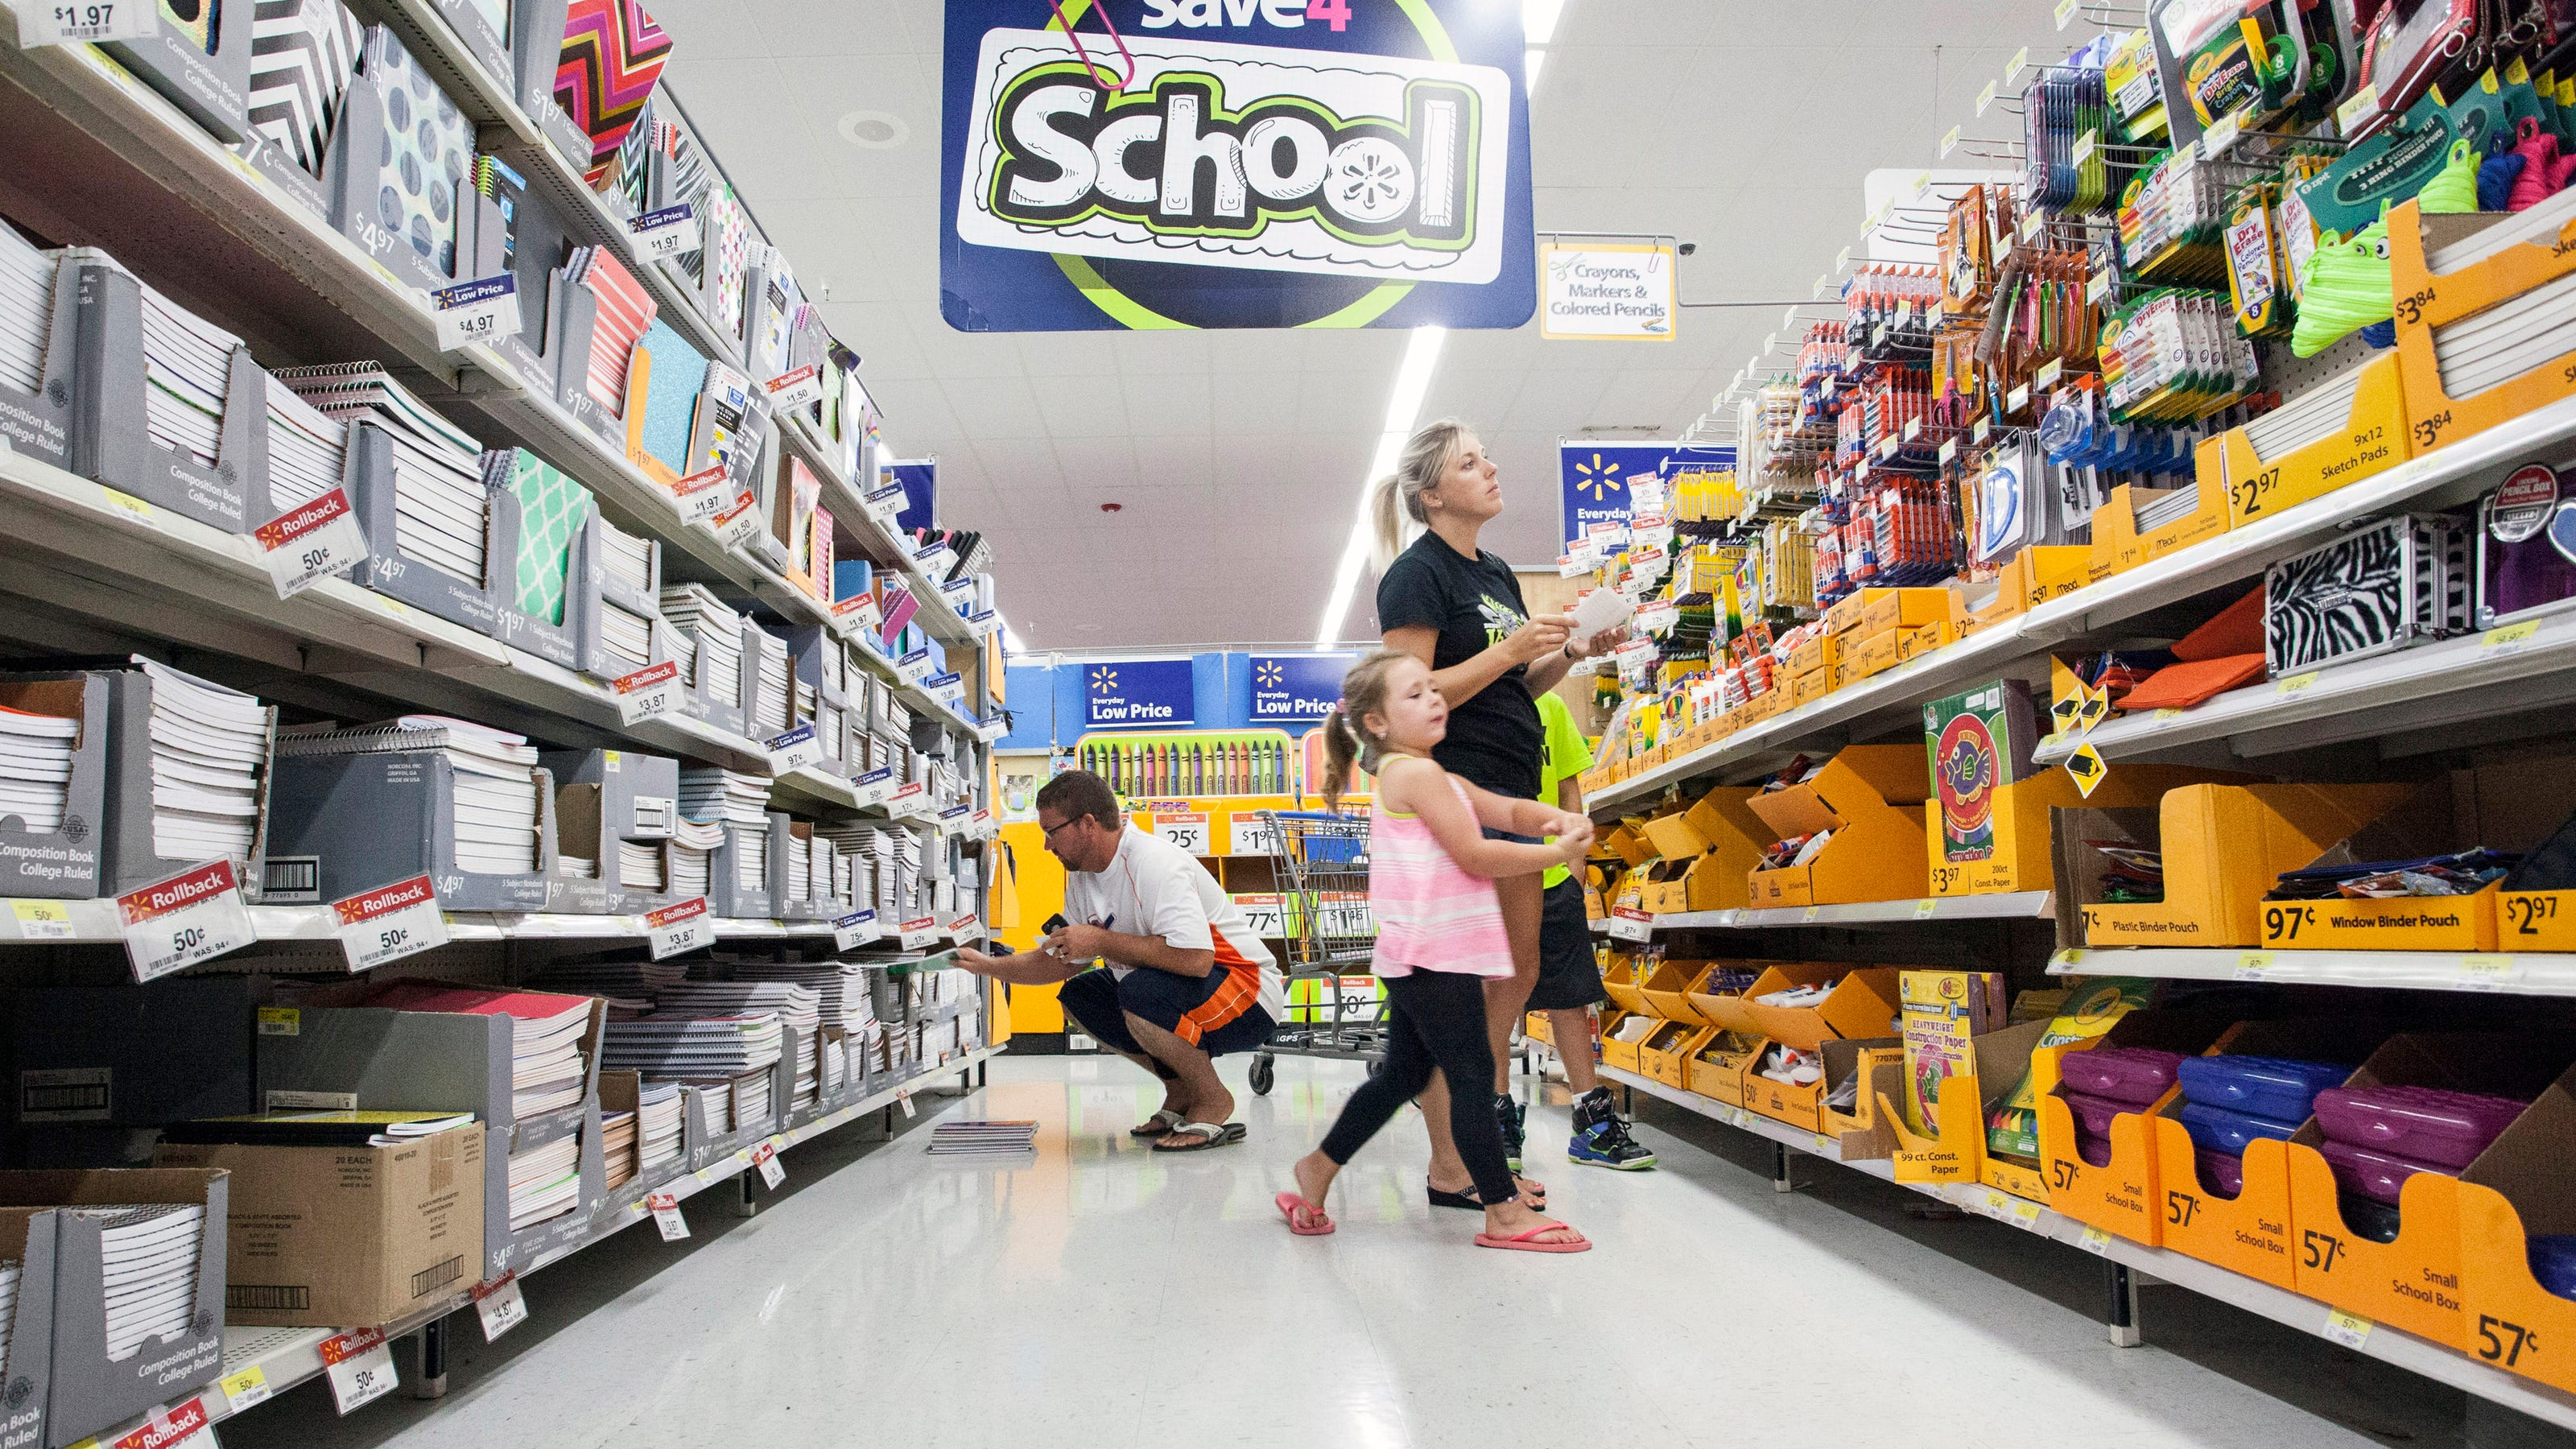 School Supplies Where The Best Deals Are